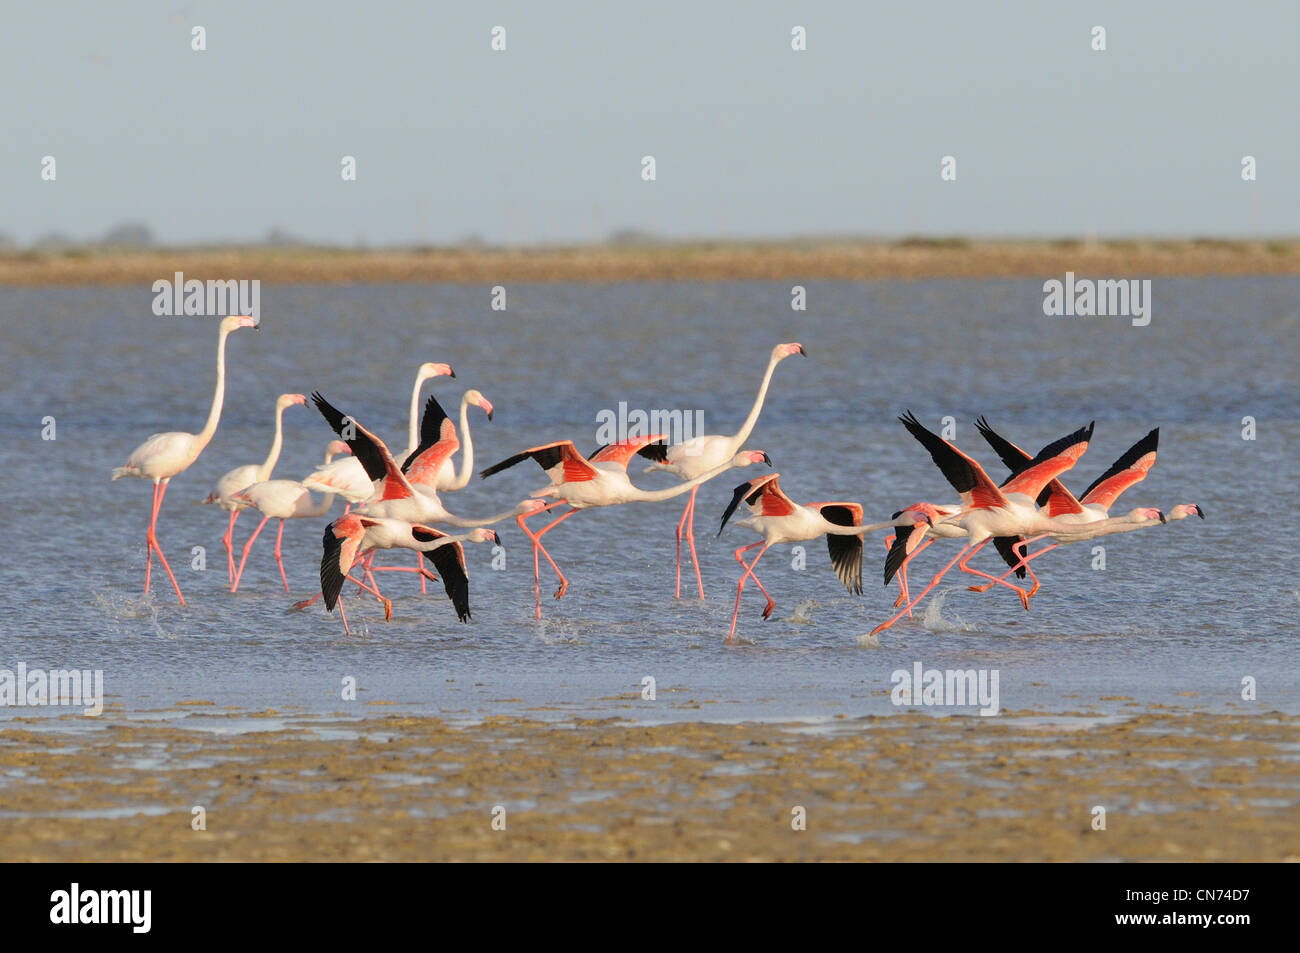 Greater Flamingo Phoenicopterus ruber Taking flight Photographed in the Camargue, France - Stock Image